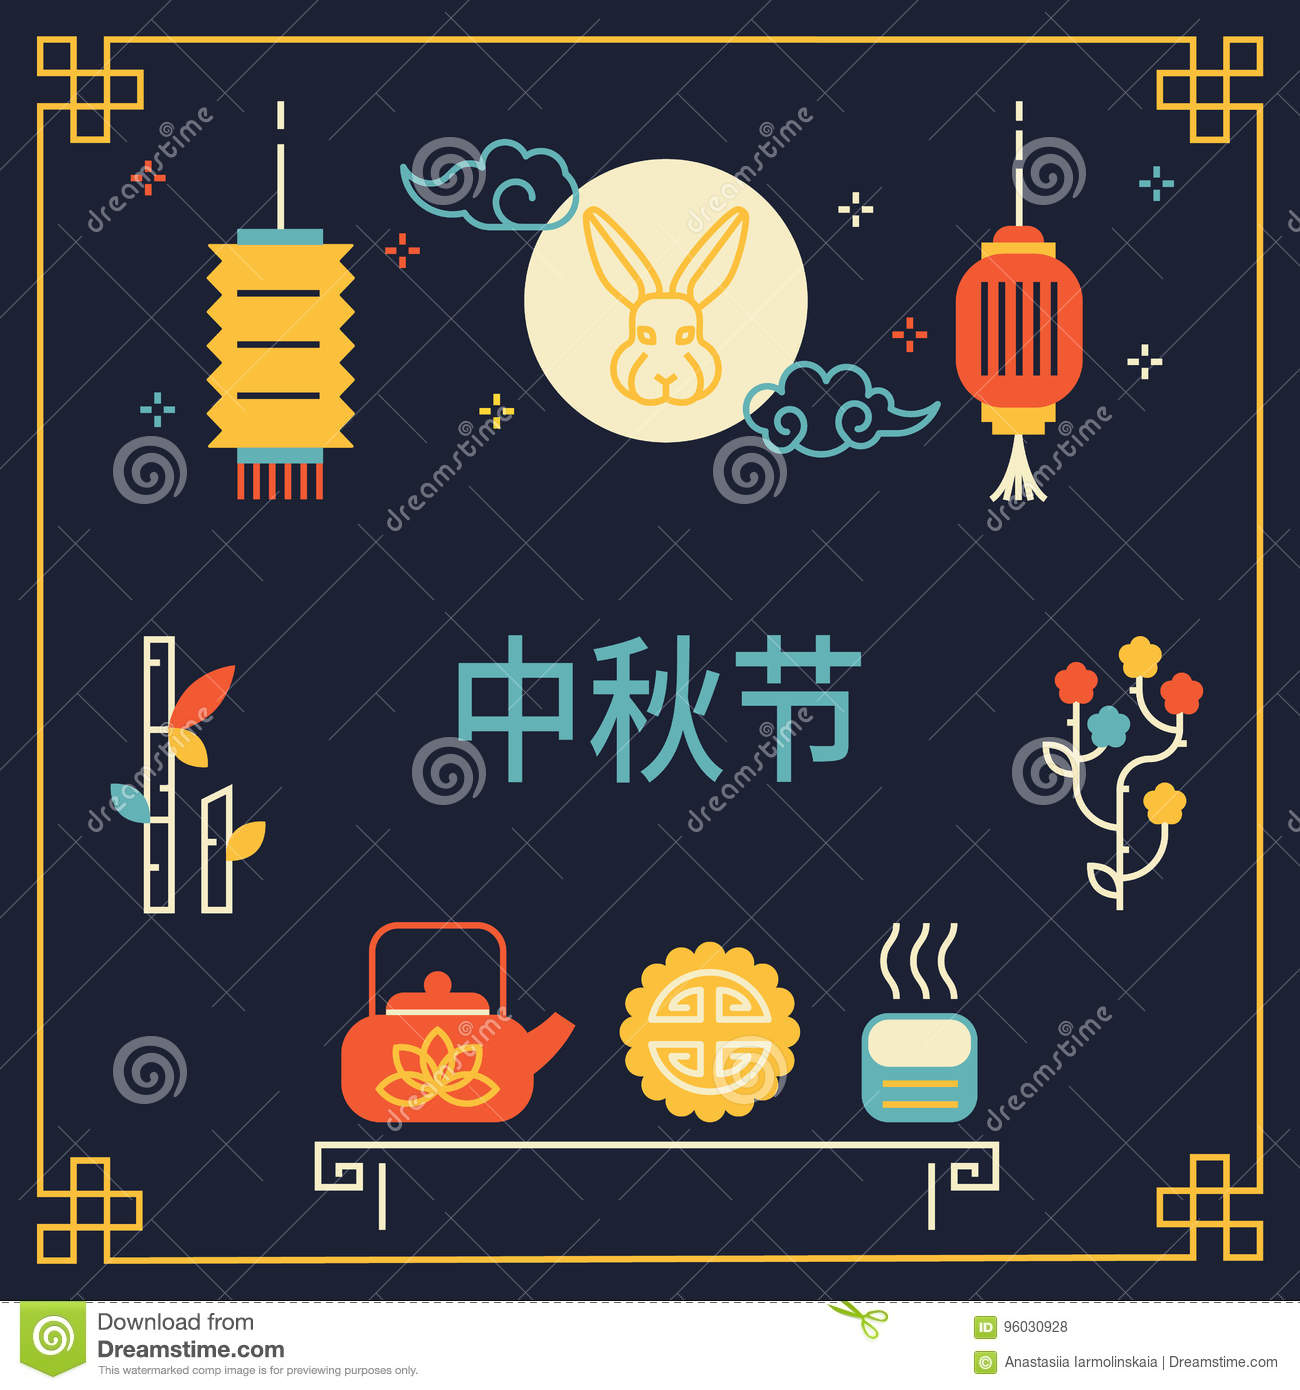 Chinese moon festival banner design stock vector illustration of chinese moon festival banner design kristyandbryce Choice Image